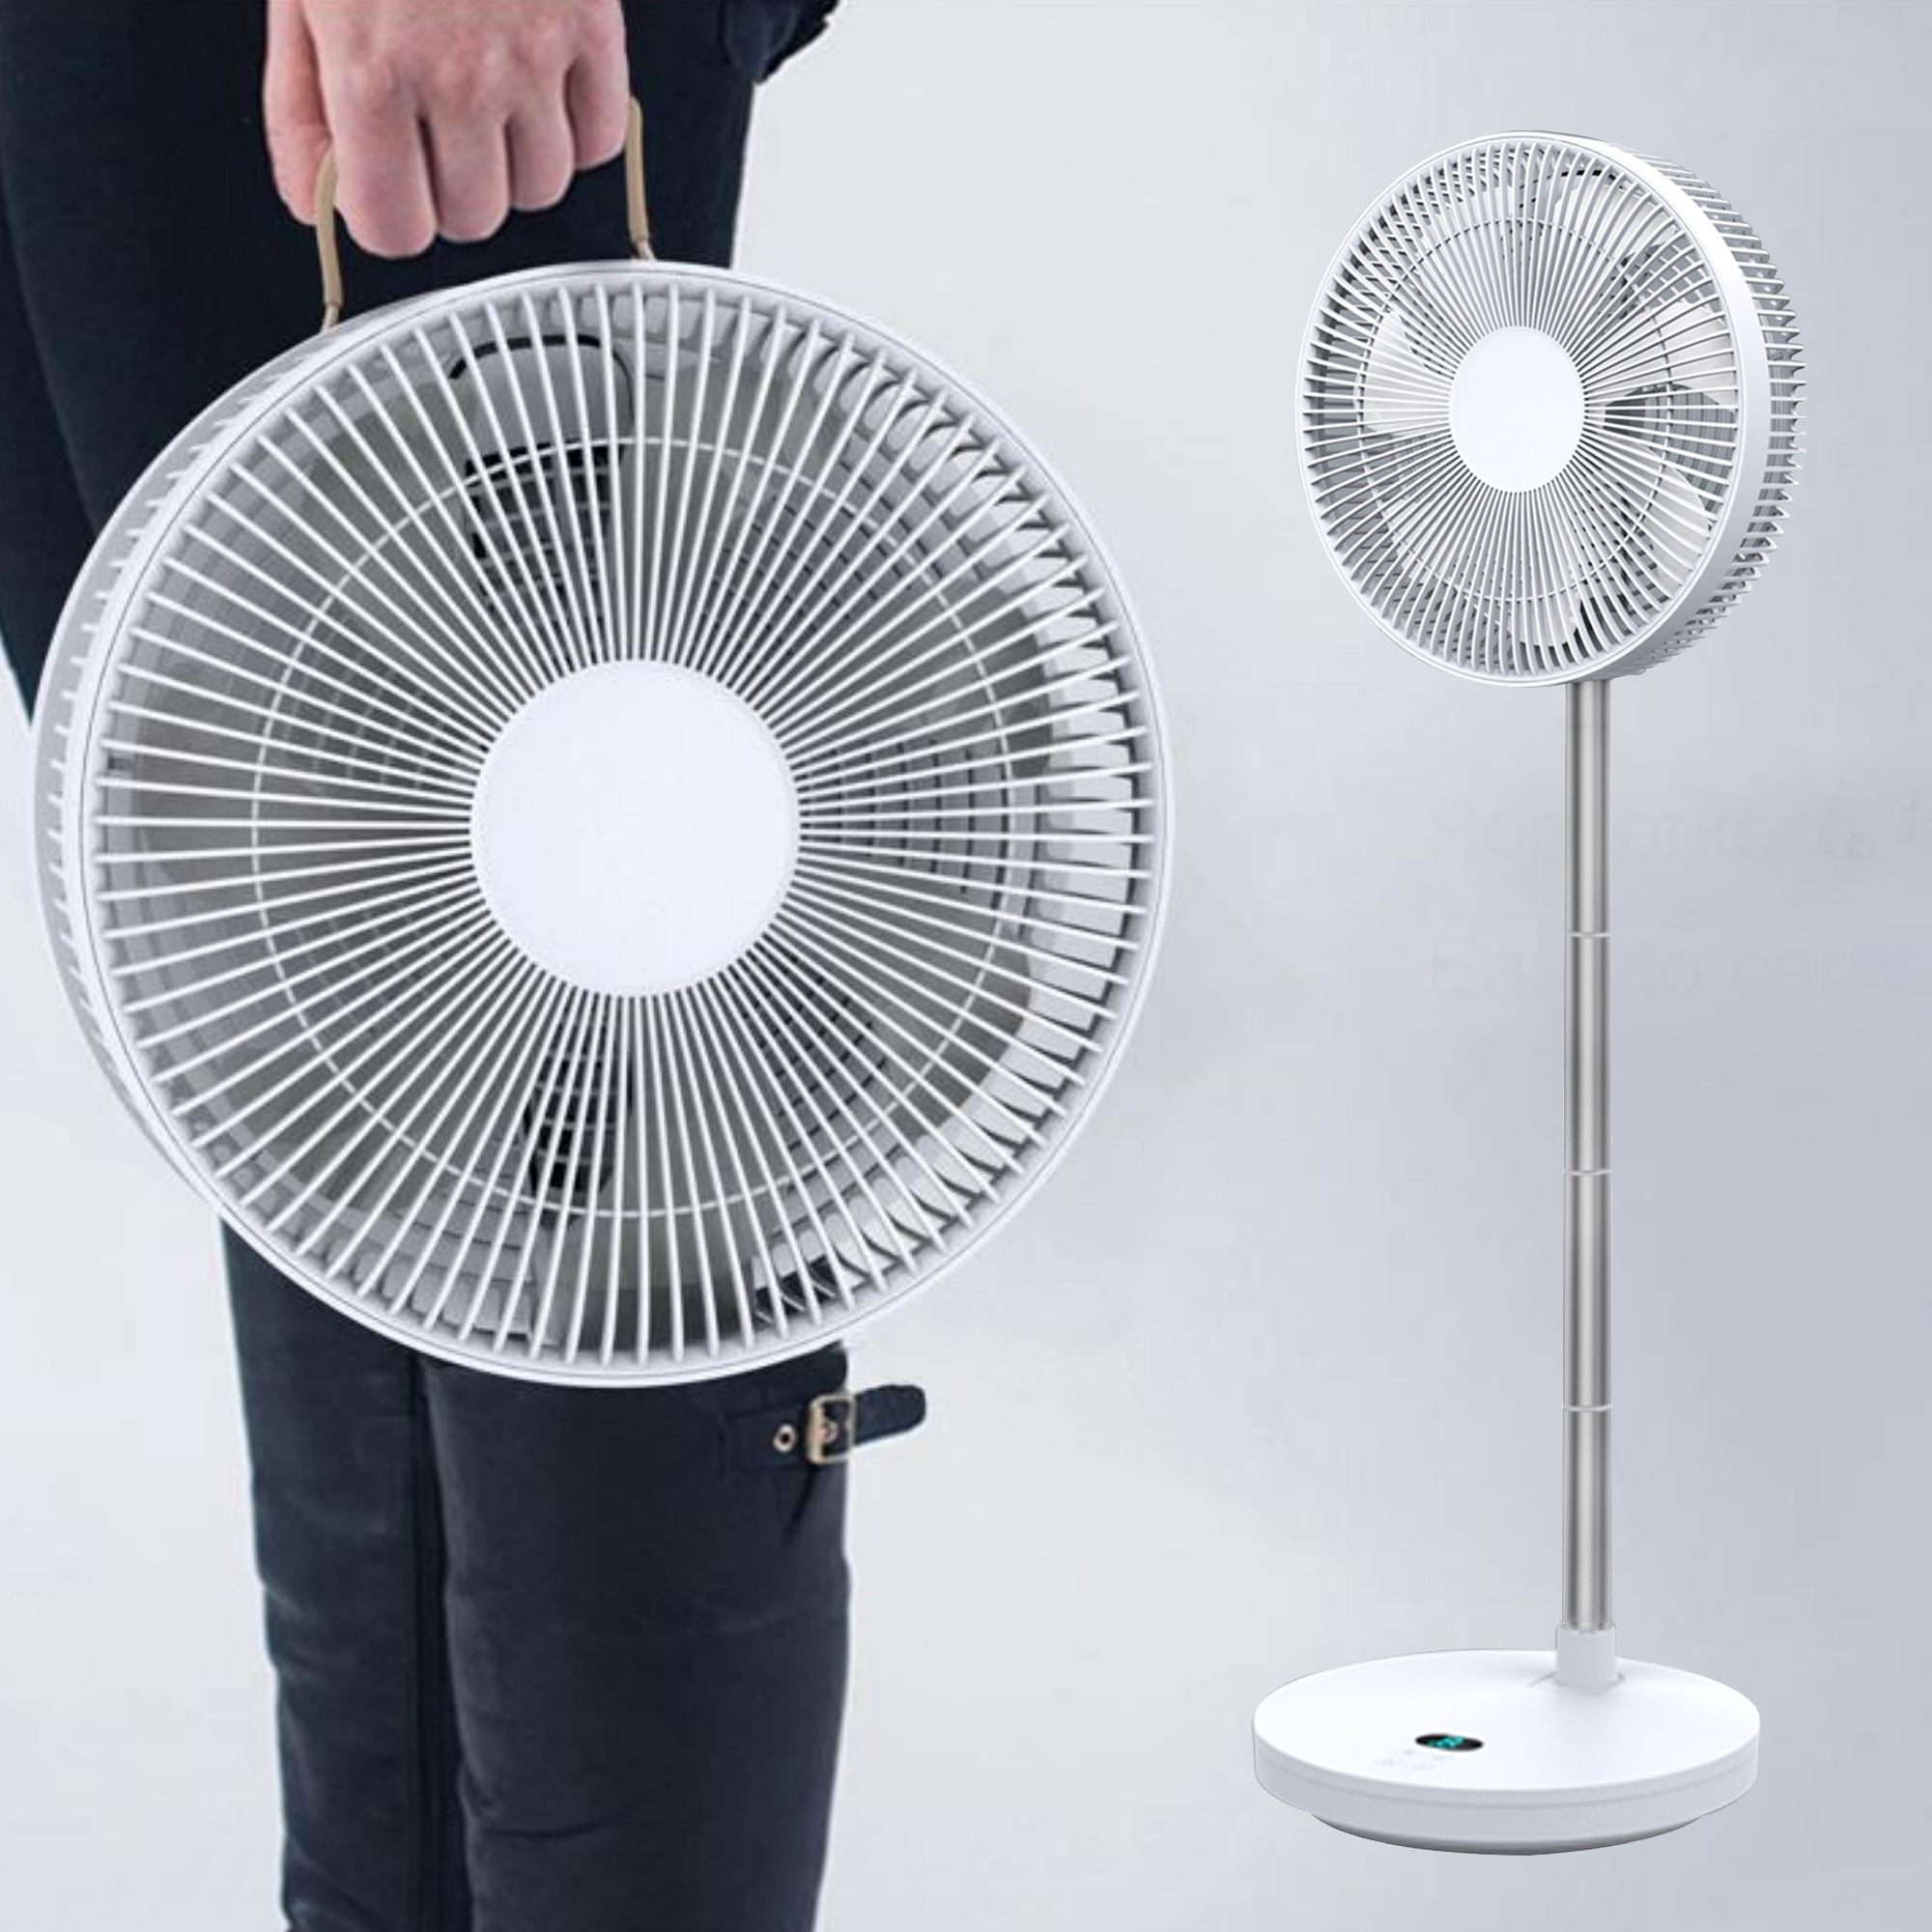 Pedestal Rechargeable Table Fan Portable USB Handheld 12v Dc Stand Folding Foldable Standing Air Cooler